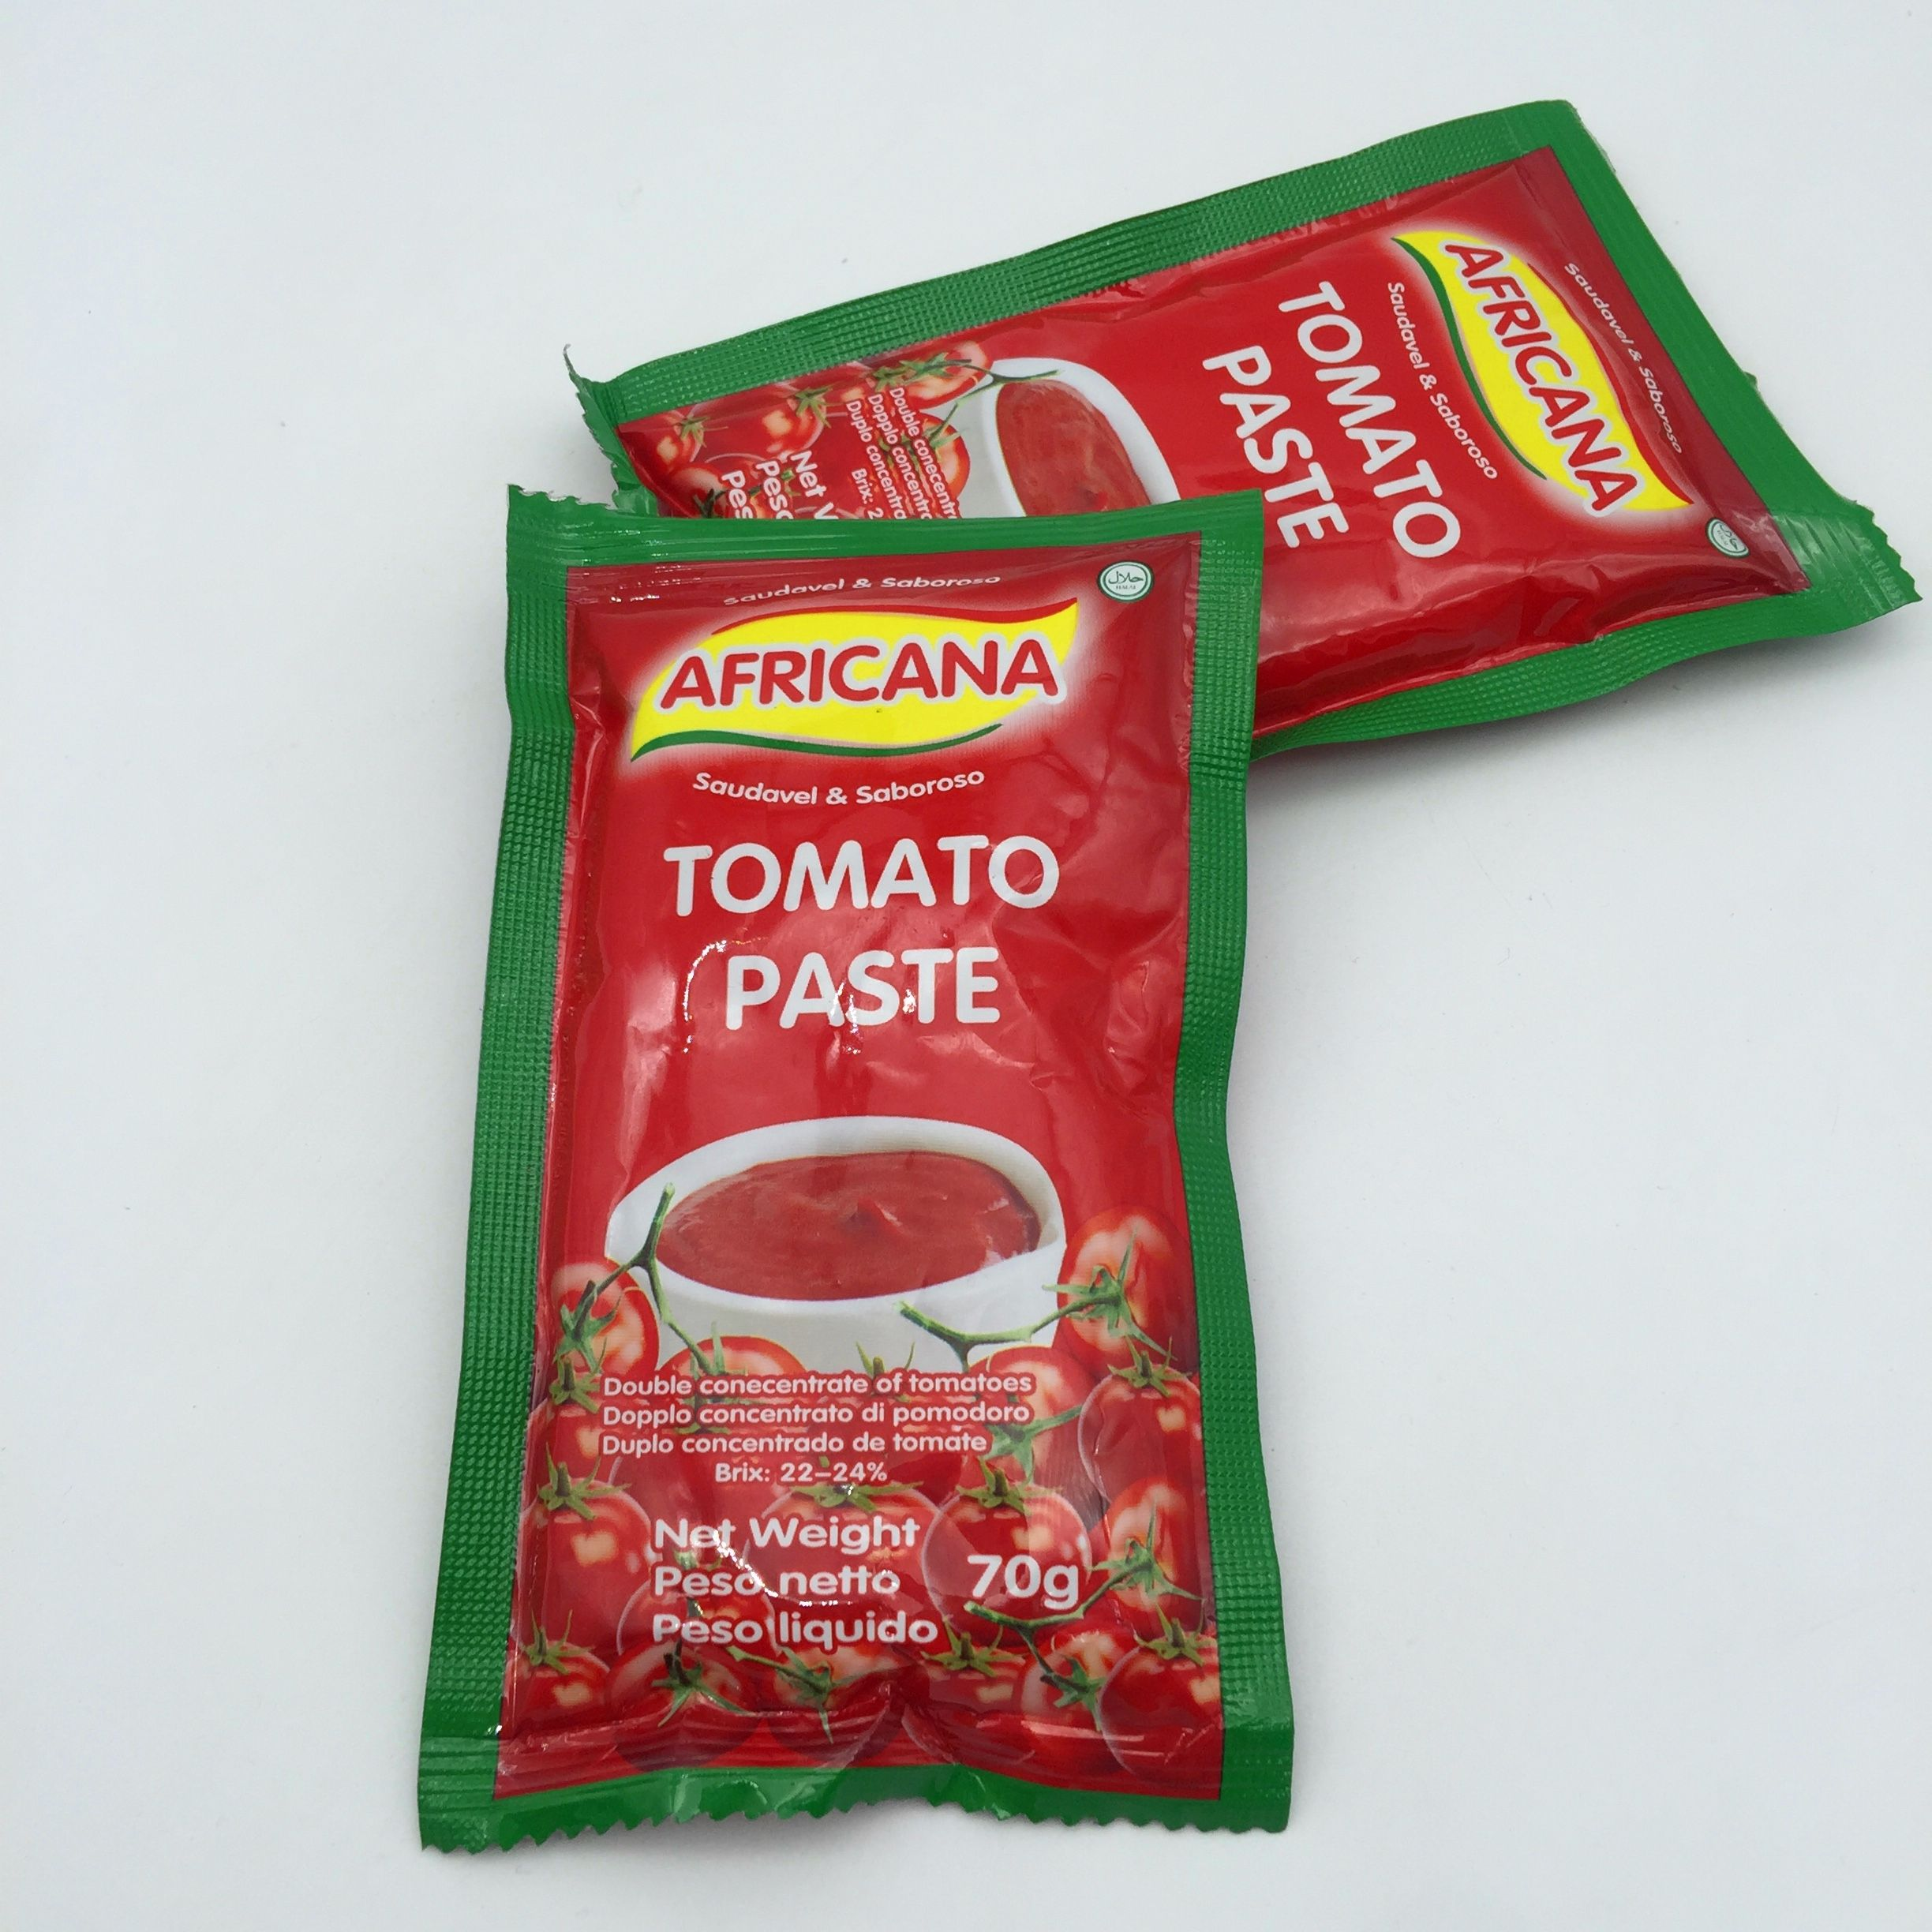 28% to 30% brix china factory Tomato Paste 50g 70g sachet package pouch tomato ketchup paste sauce